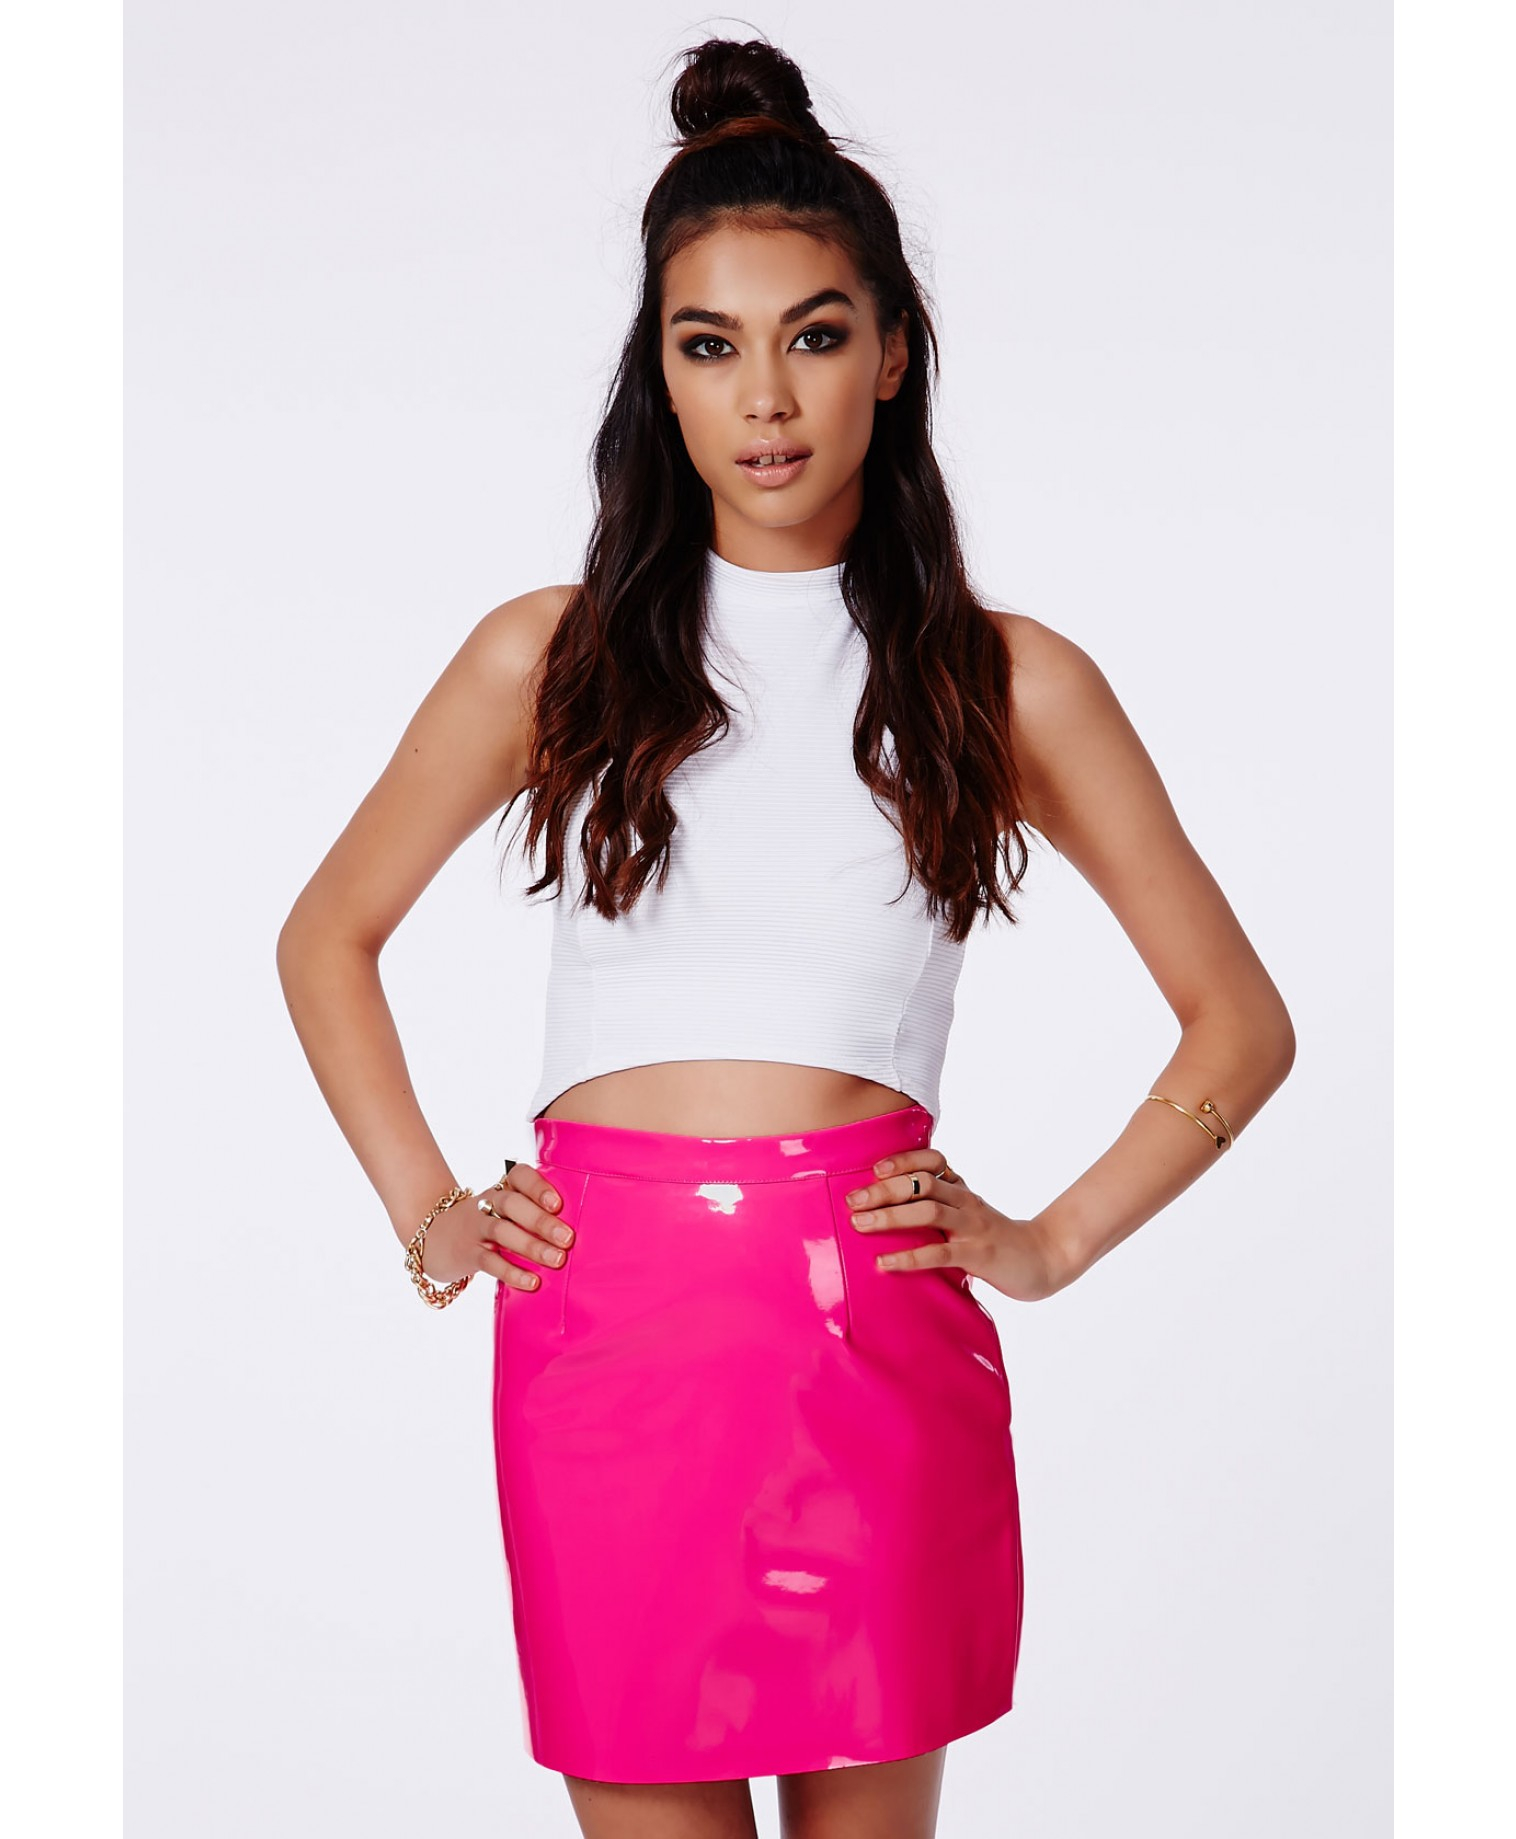 Missguided Nagsia Neon Pink Pvc Mini Skirt in Pink | Lyst